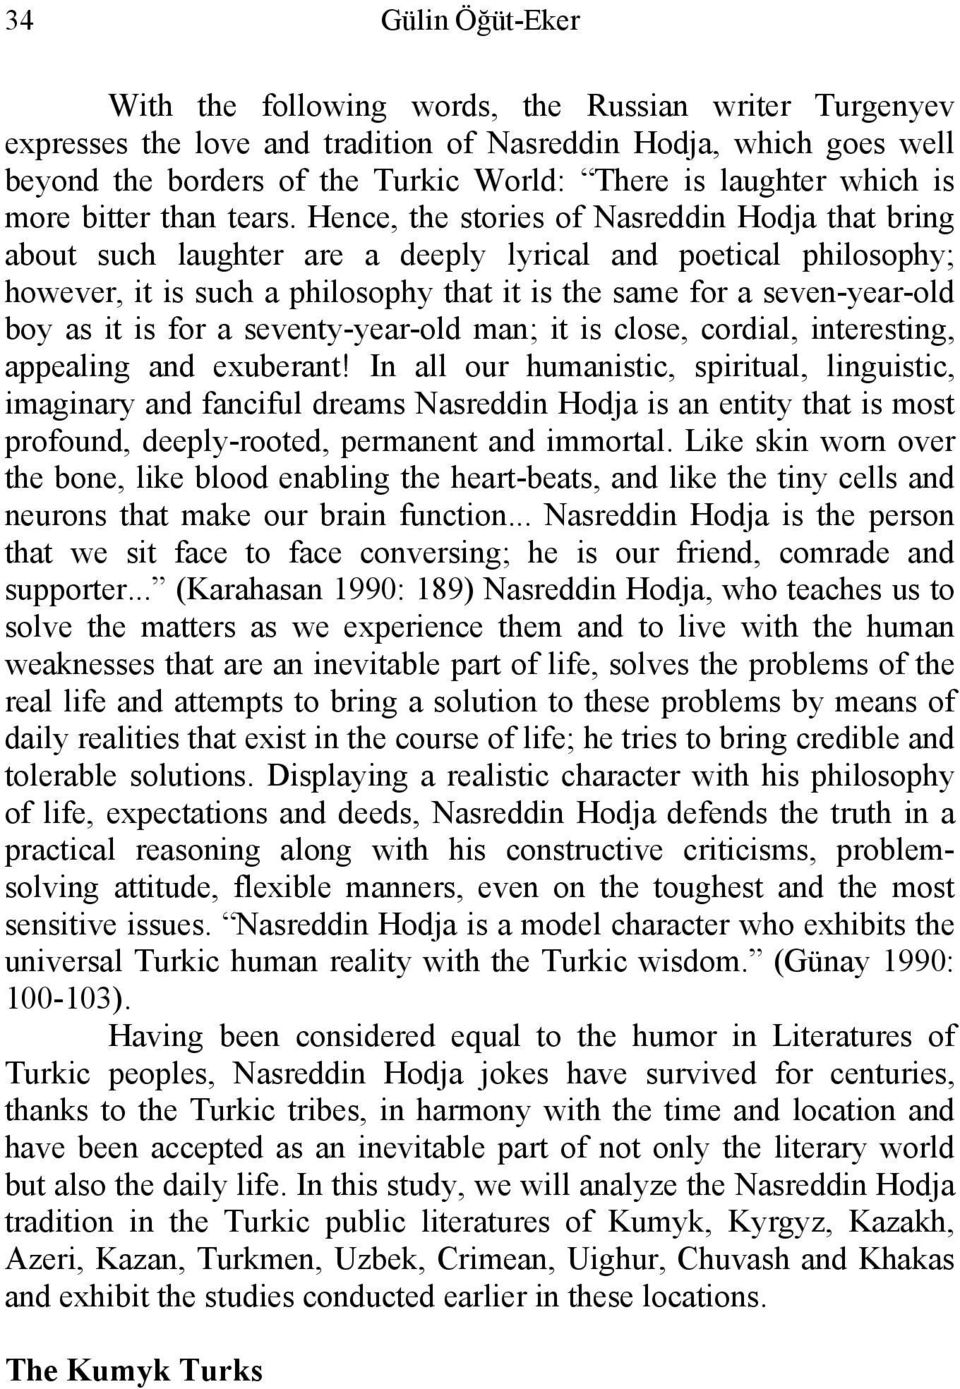 Hence, the stories of Nasreddin Hodja that bring about such laughter are a deeply lyrical and poetical philosophy; however, it is such a philosophy that it is the same for a seven-year-old boy as it